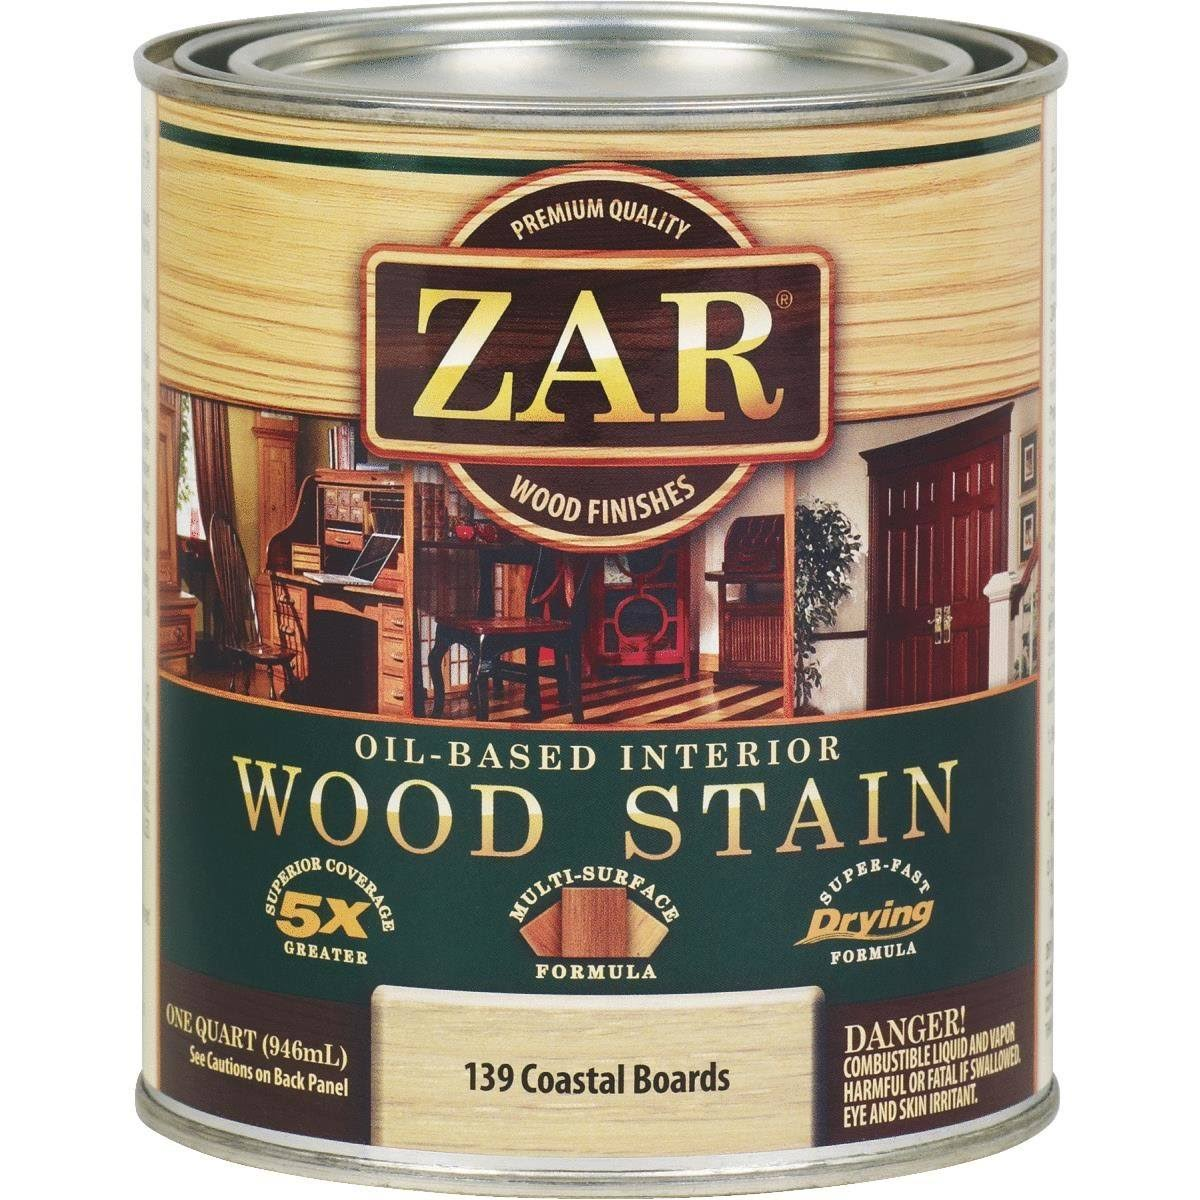 Zar 13912 Coastal Boards Oil Based Wood Stain - White, 1 Quart